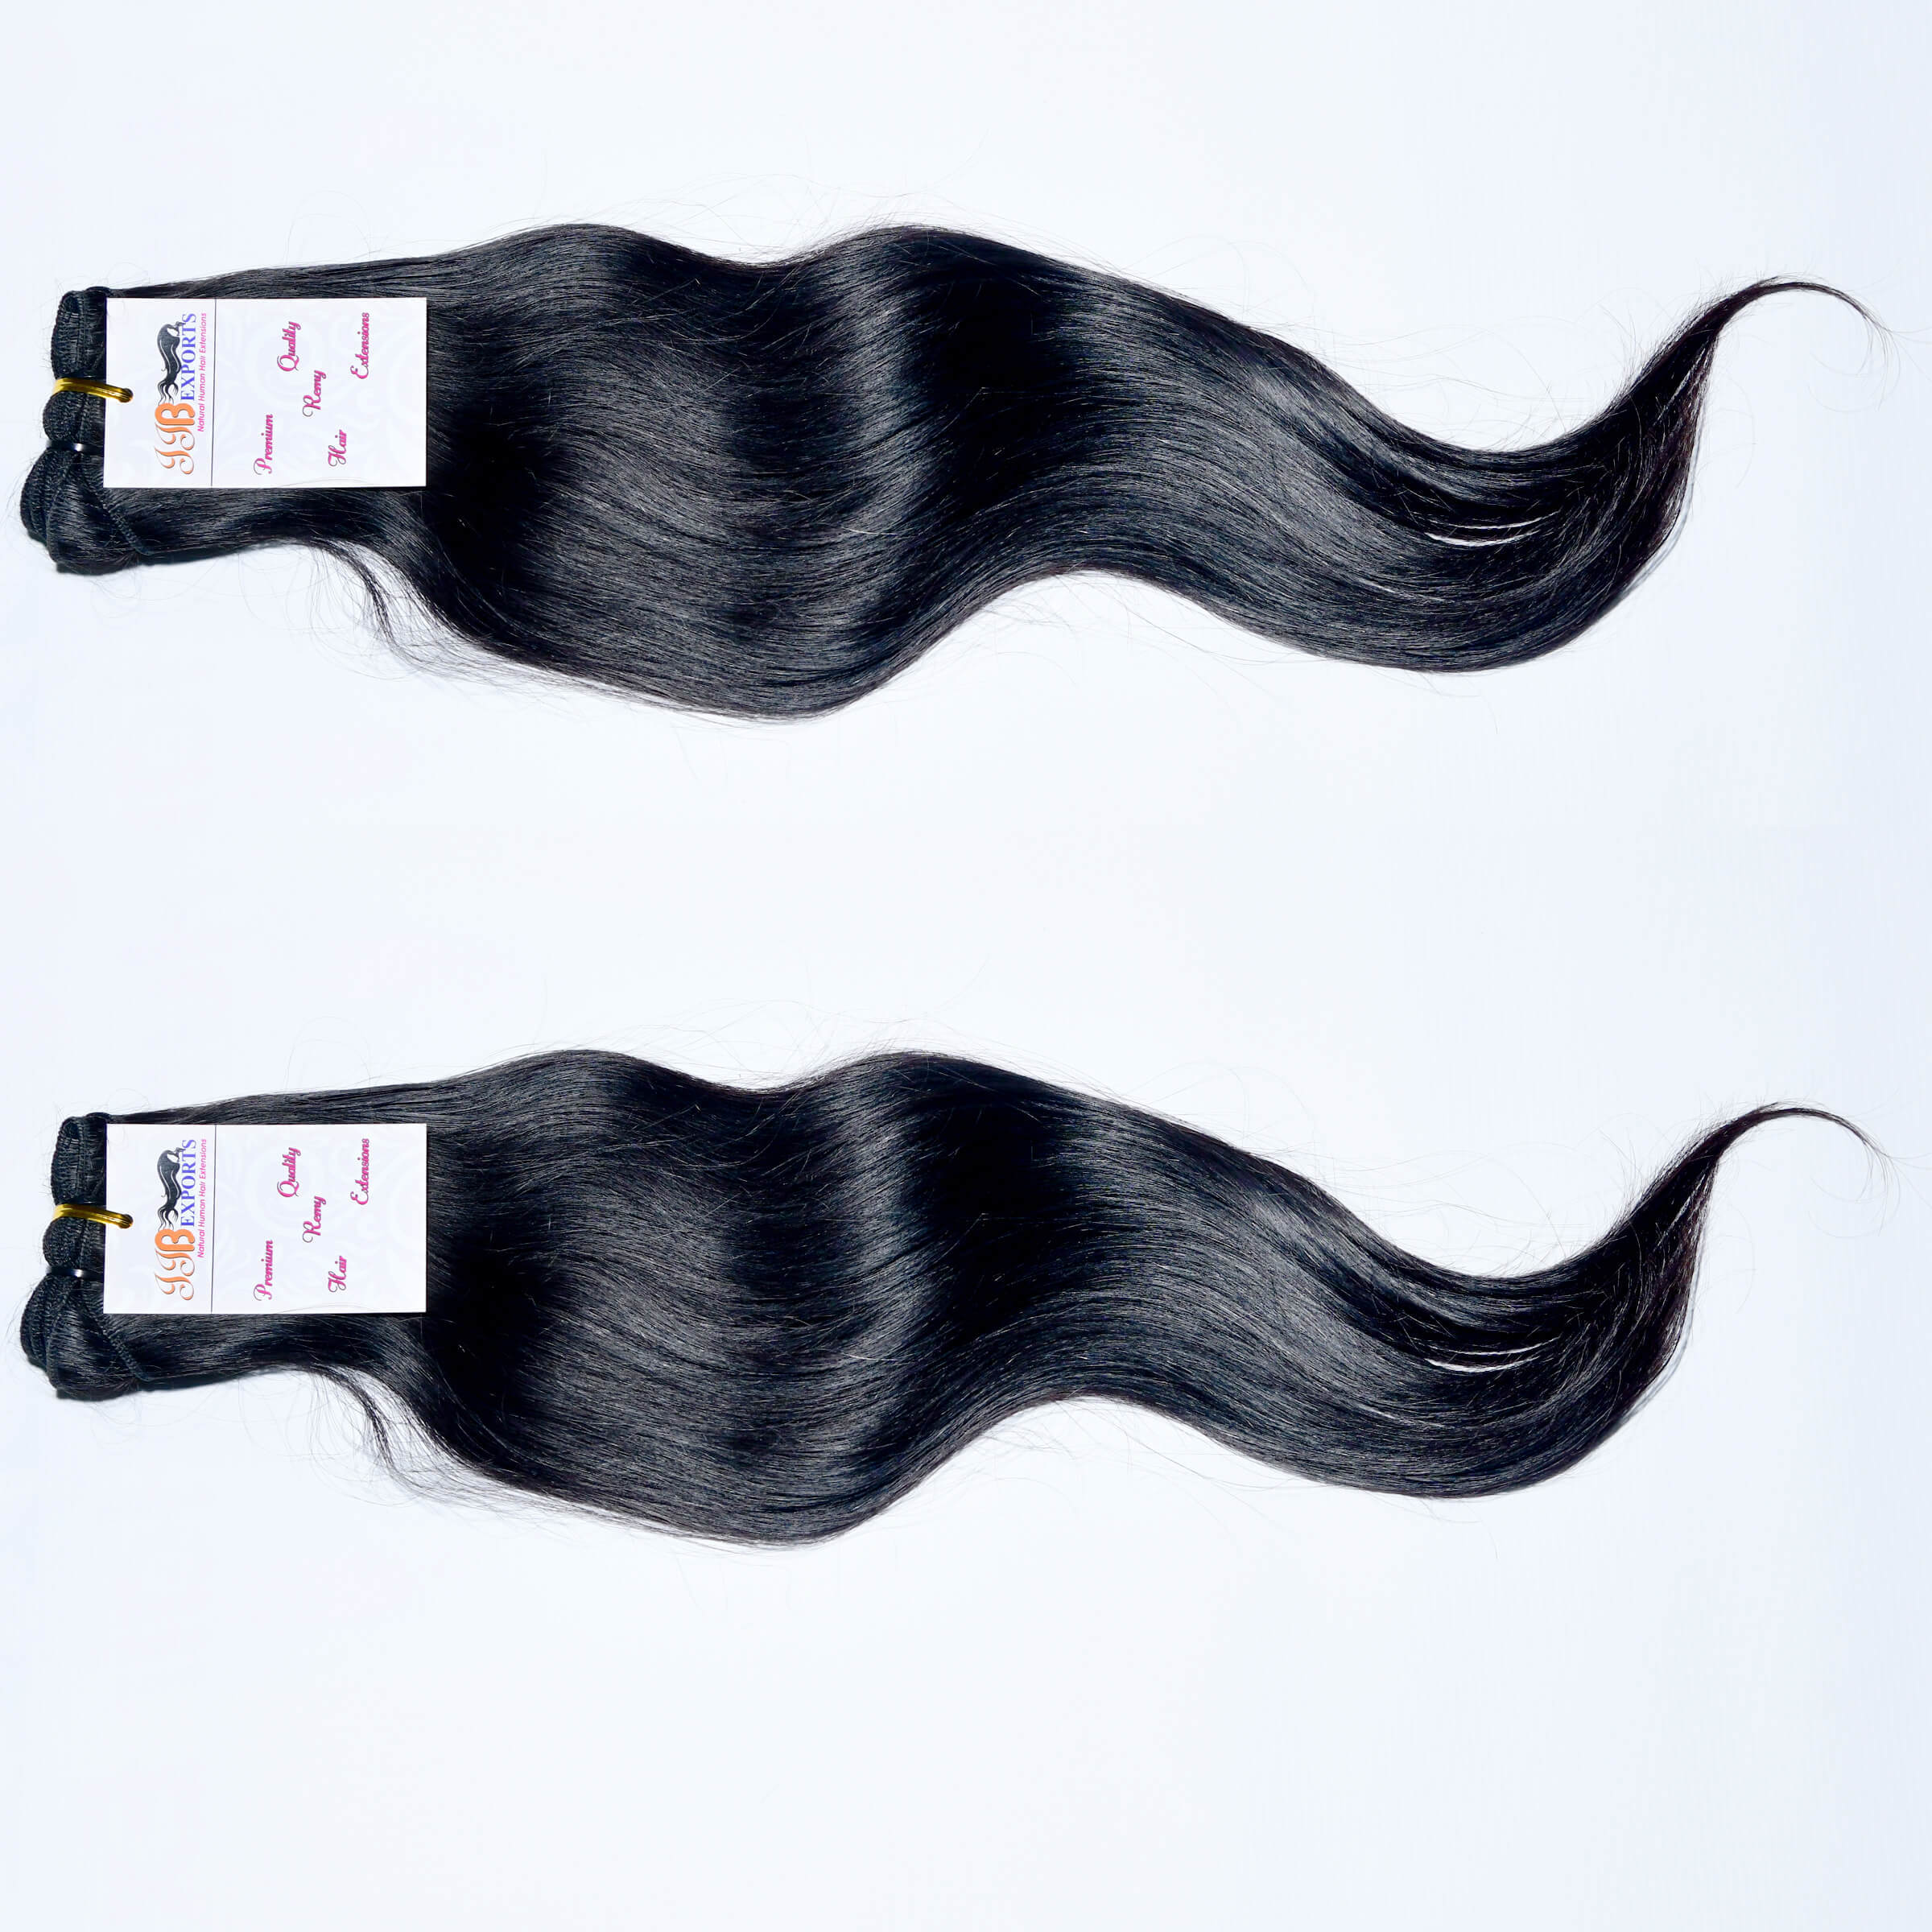 Indian Remy Cuticle Aligned Virgin Straight Human Hair Weave Bundles Brazilian 100% Natural Machine Weft Extensions